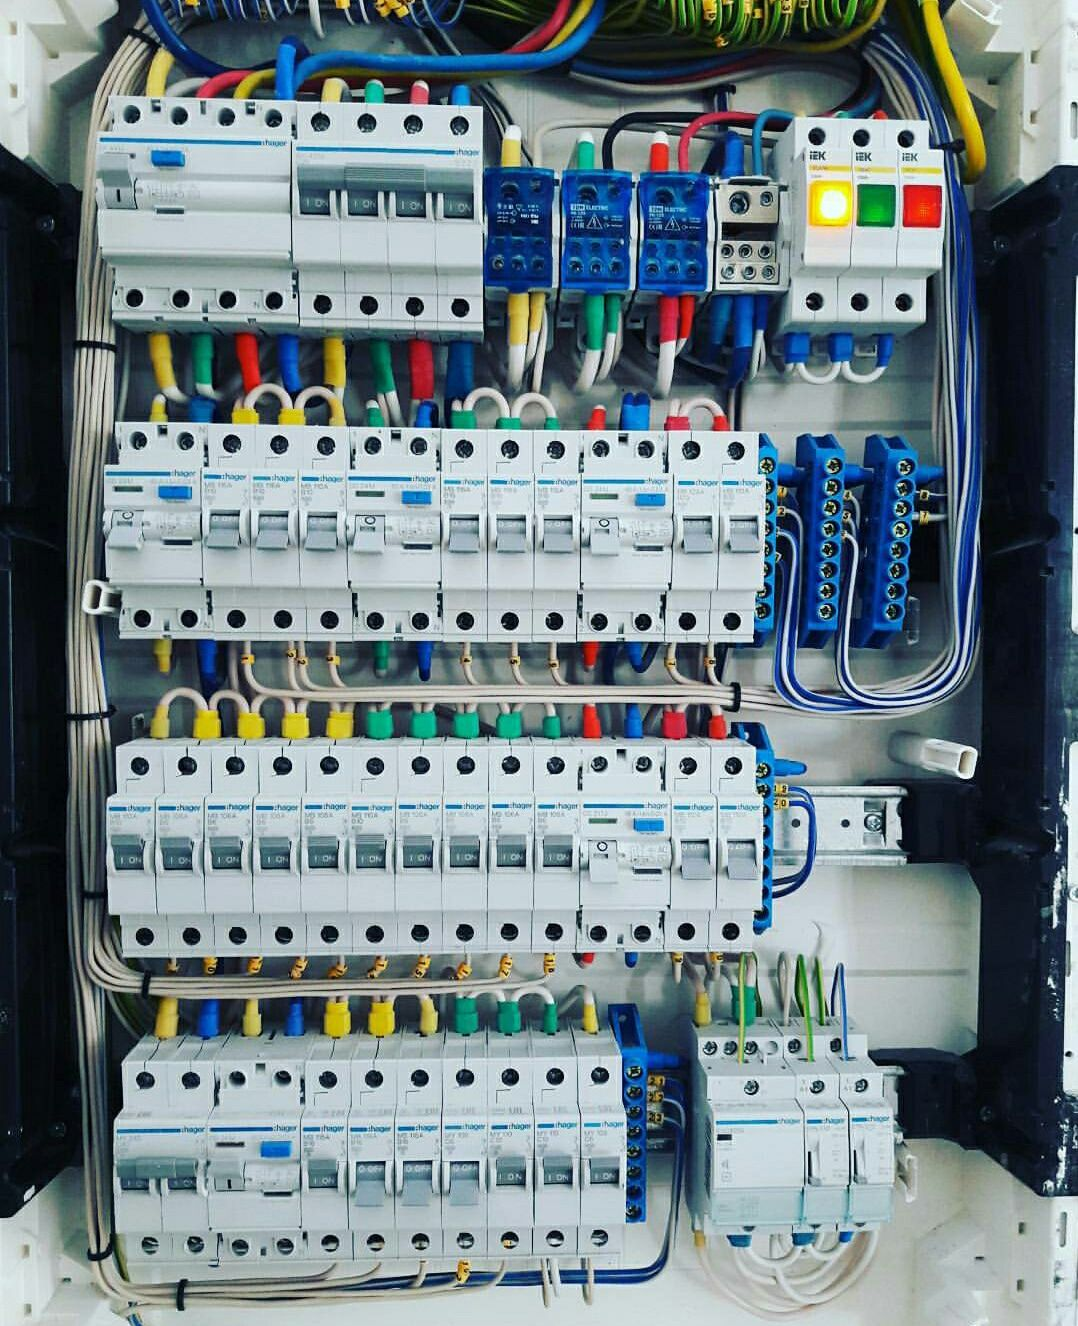 A distribution board (also known as panelboard, breaker panel, or ...